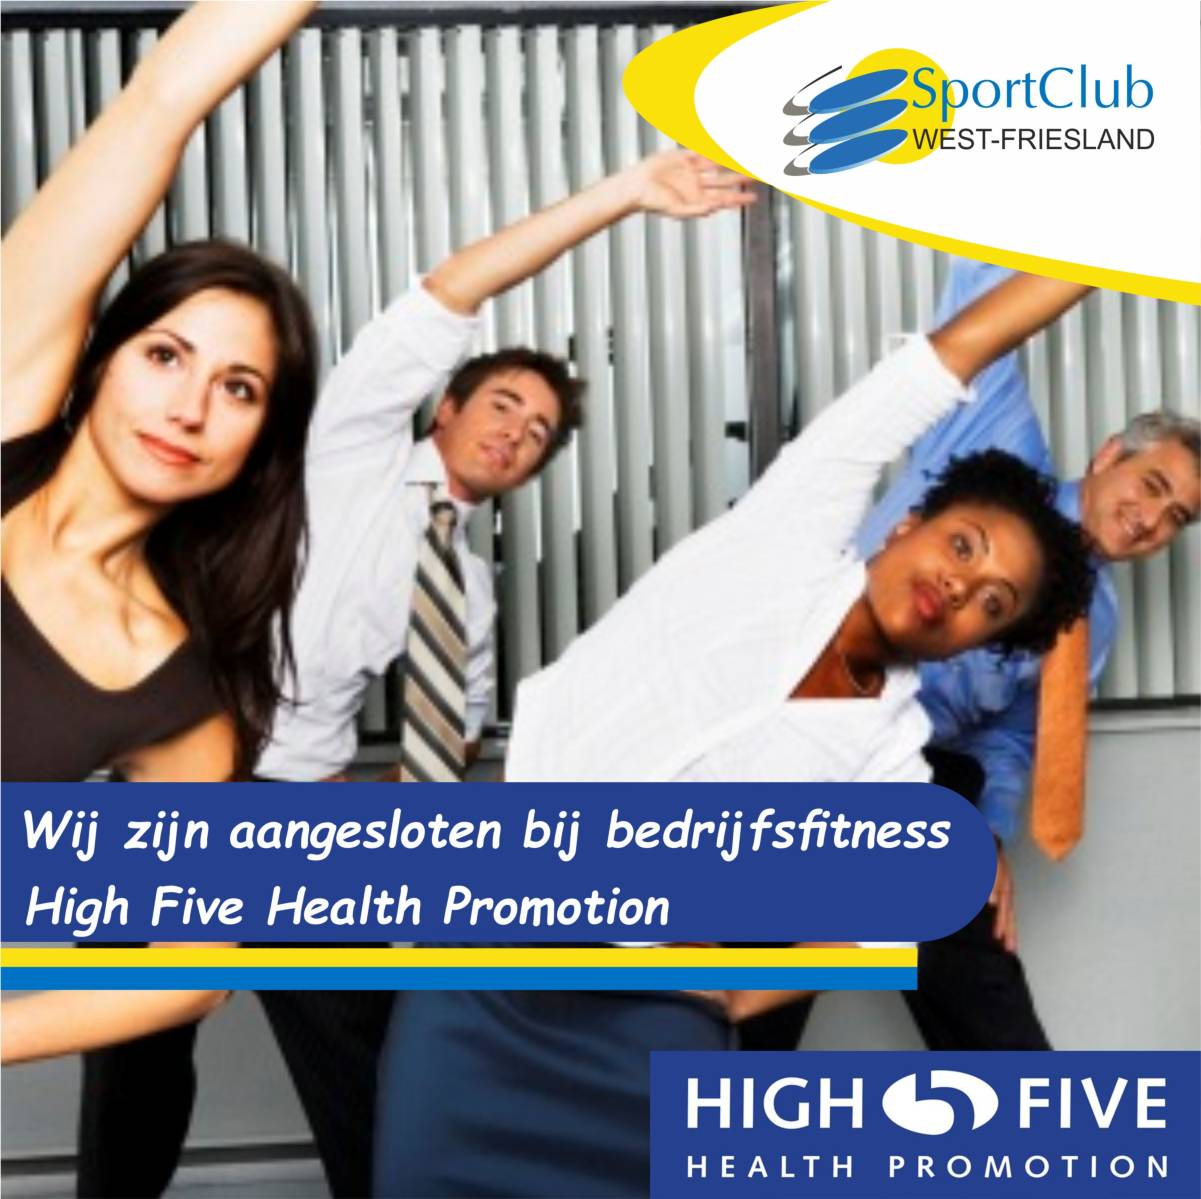 Sportclub West-Friesland is aangesloten bij High Five Health Promotion